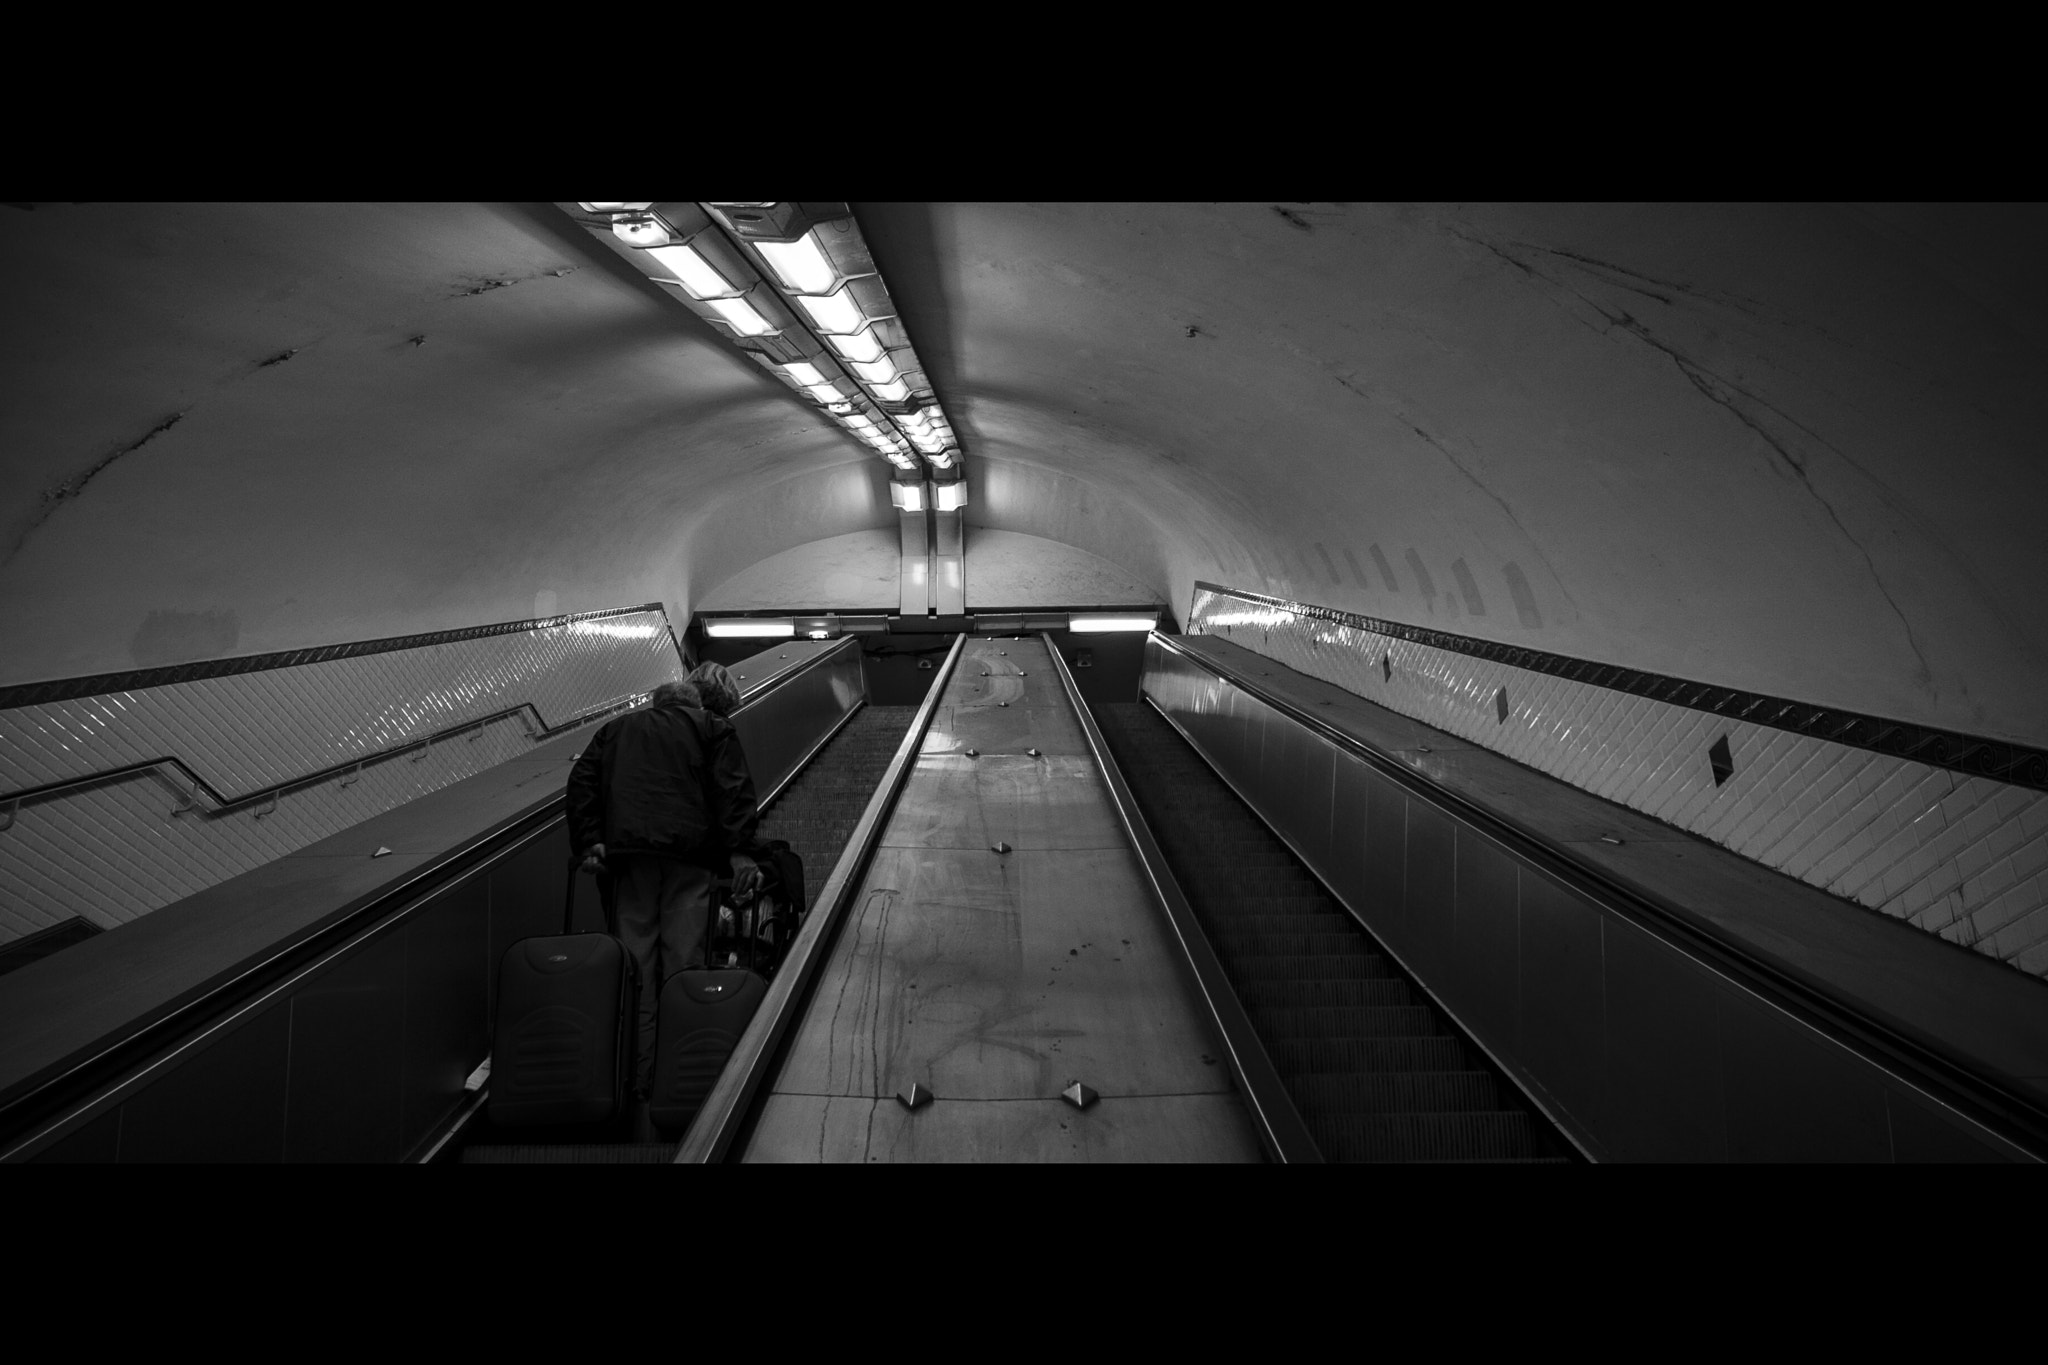 Photograph Dirty escalator by Matthieu Lepoint on 500px